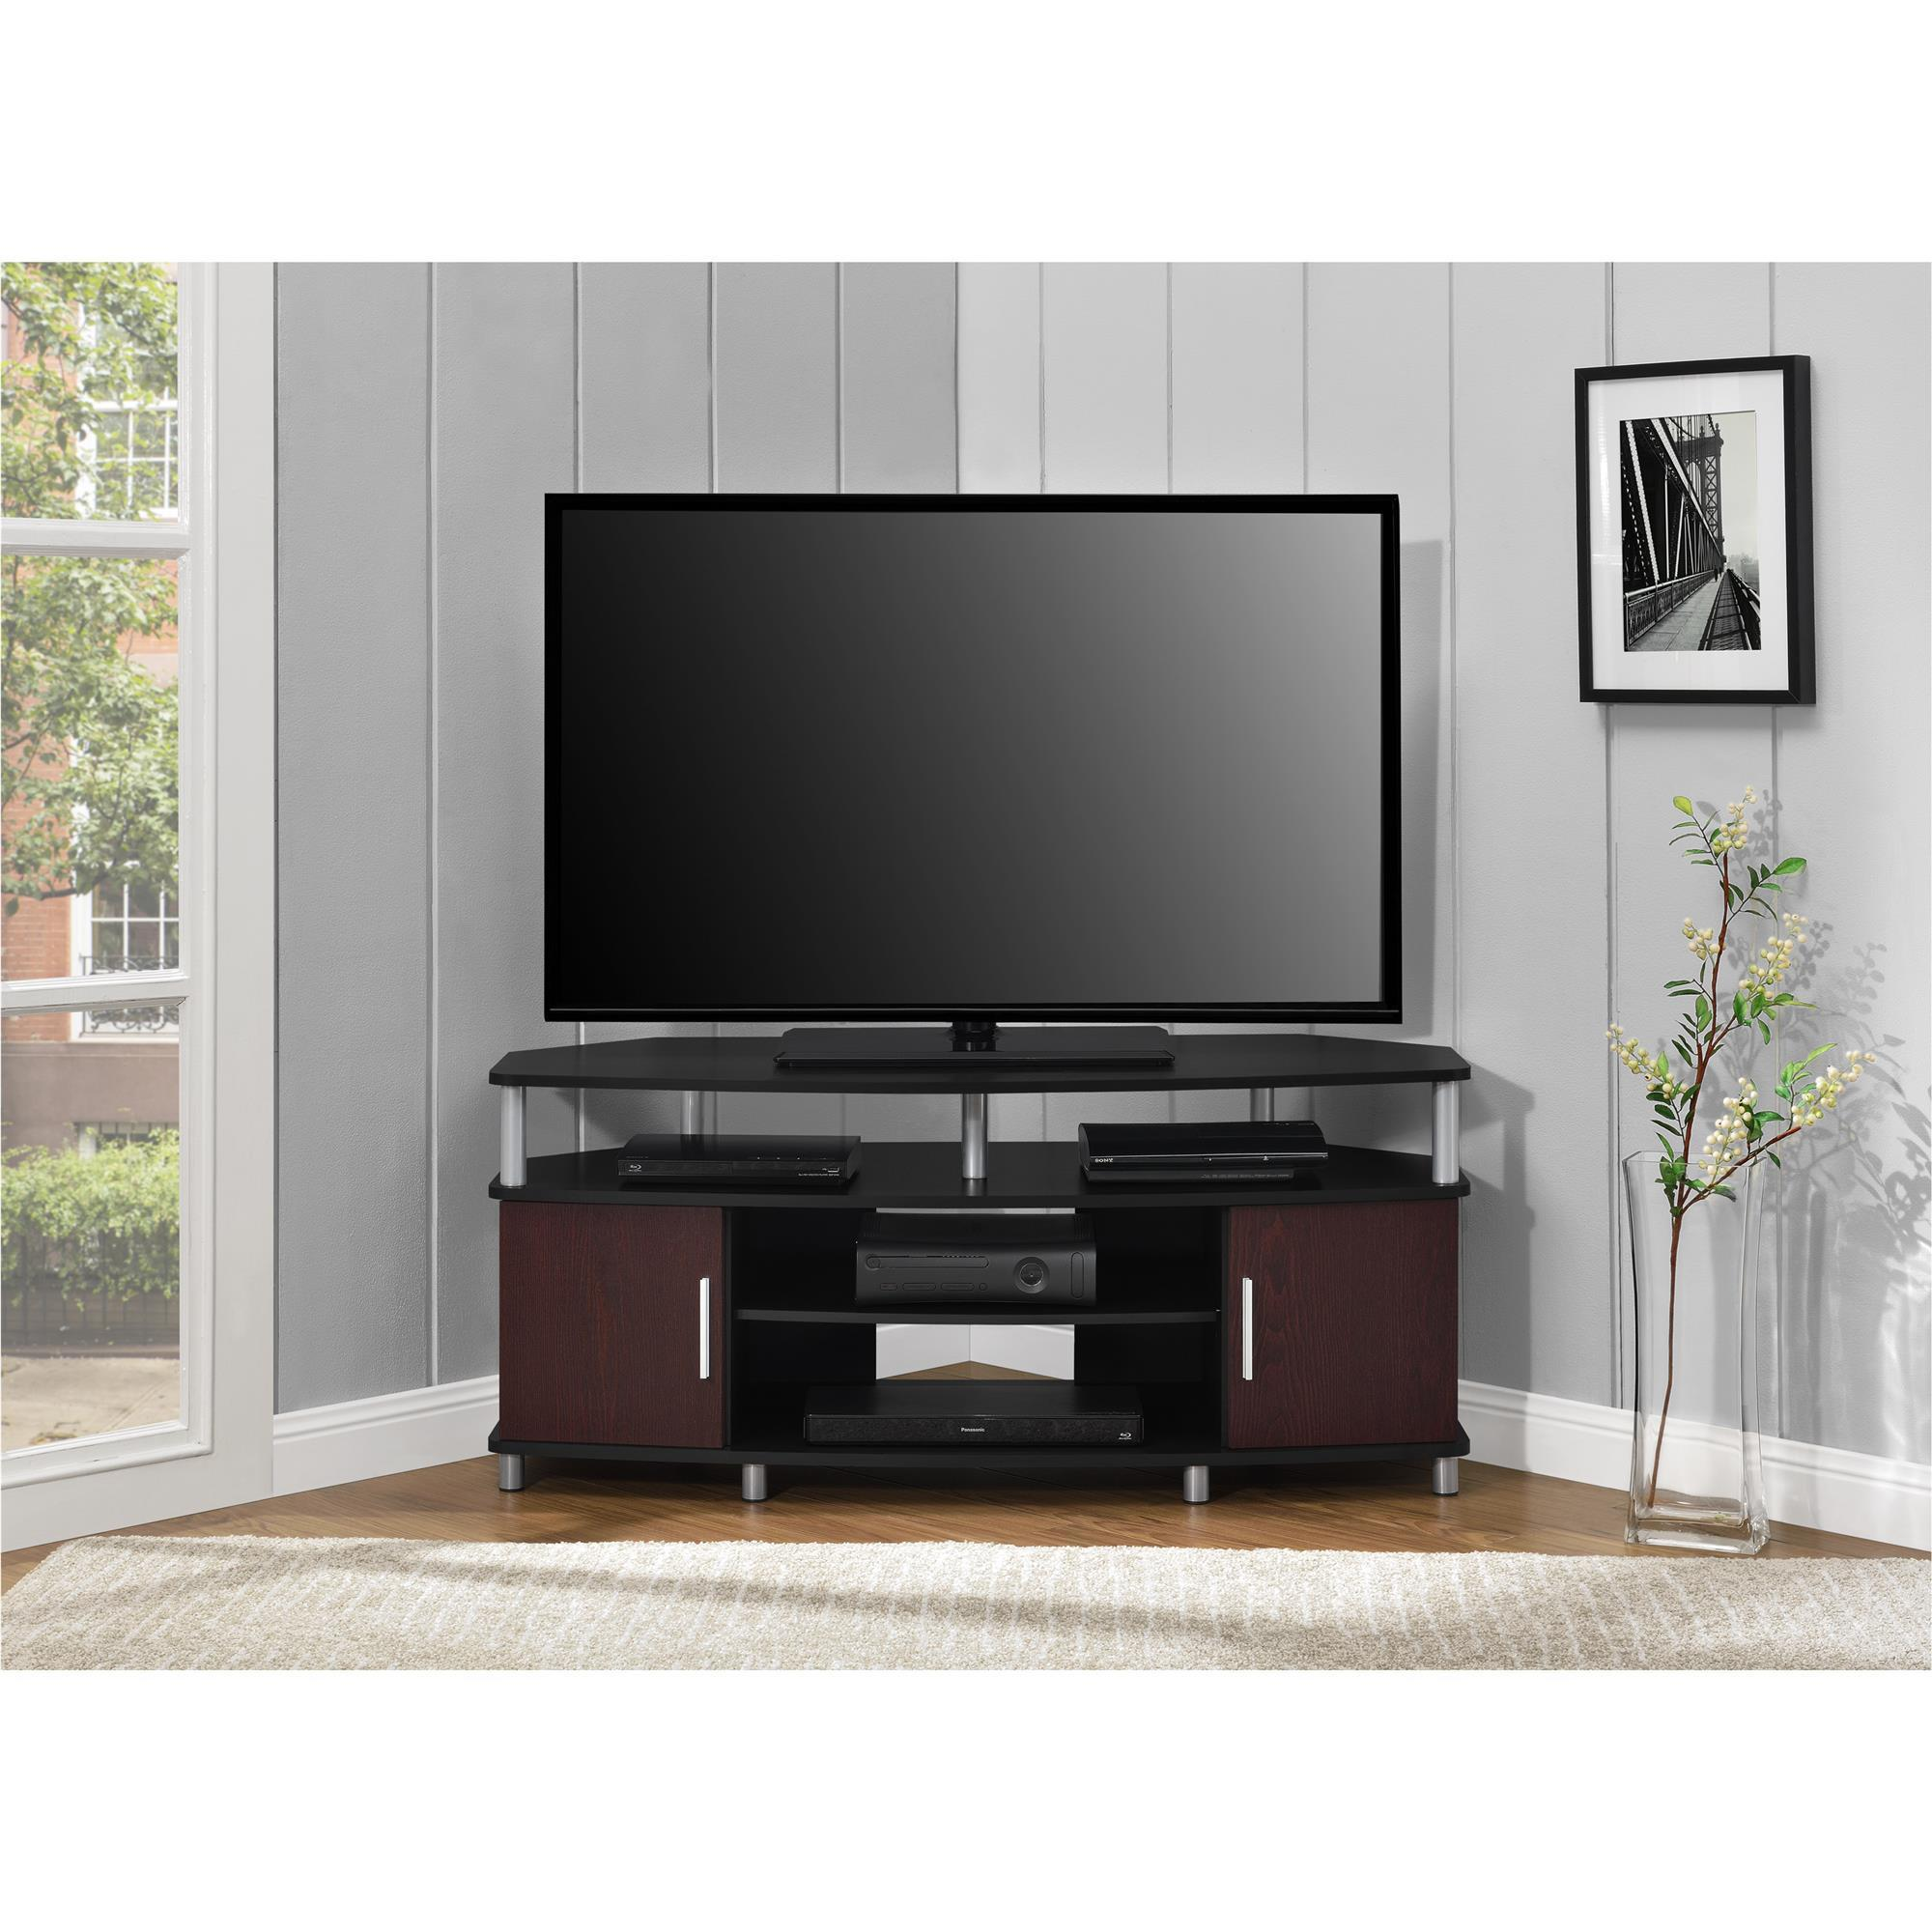 Shop Porch Den Hoyne 50 Inch Black Cherry Corner Tv Stand Free